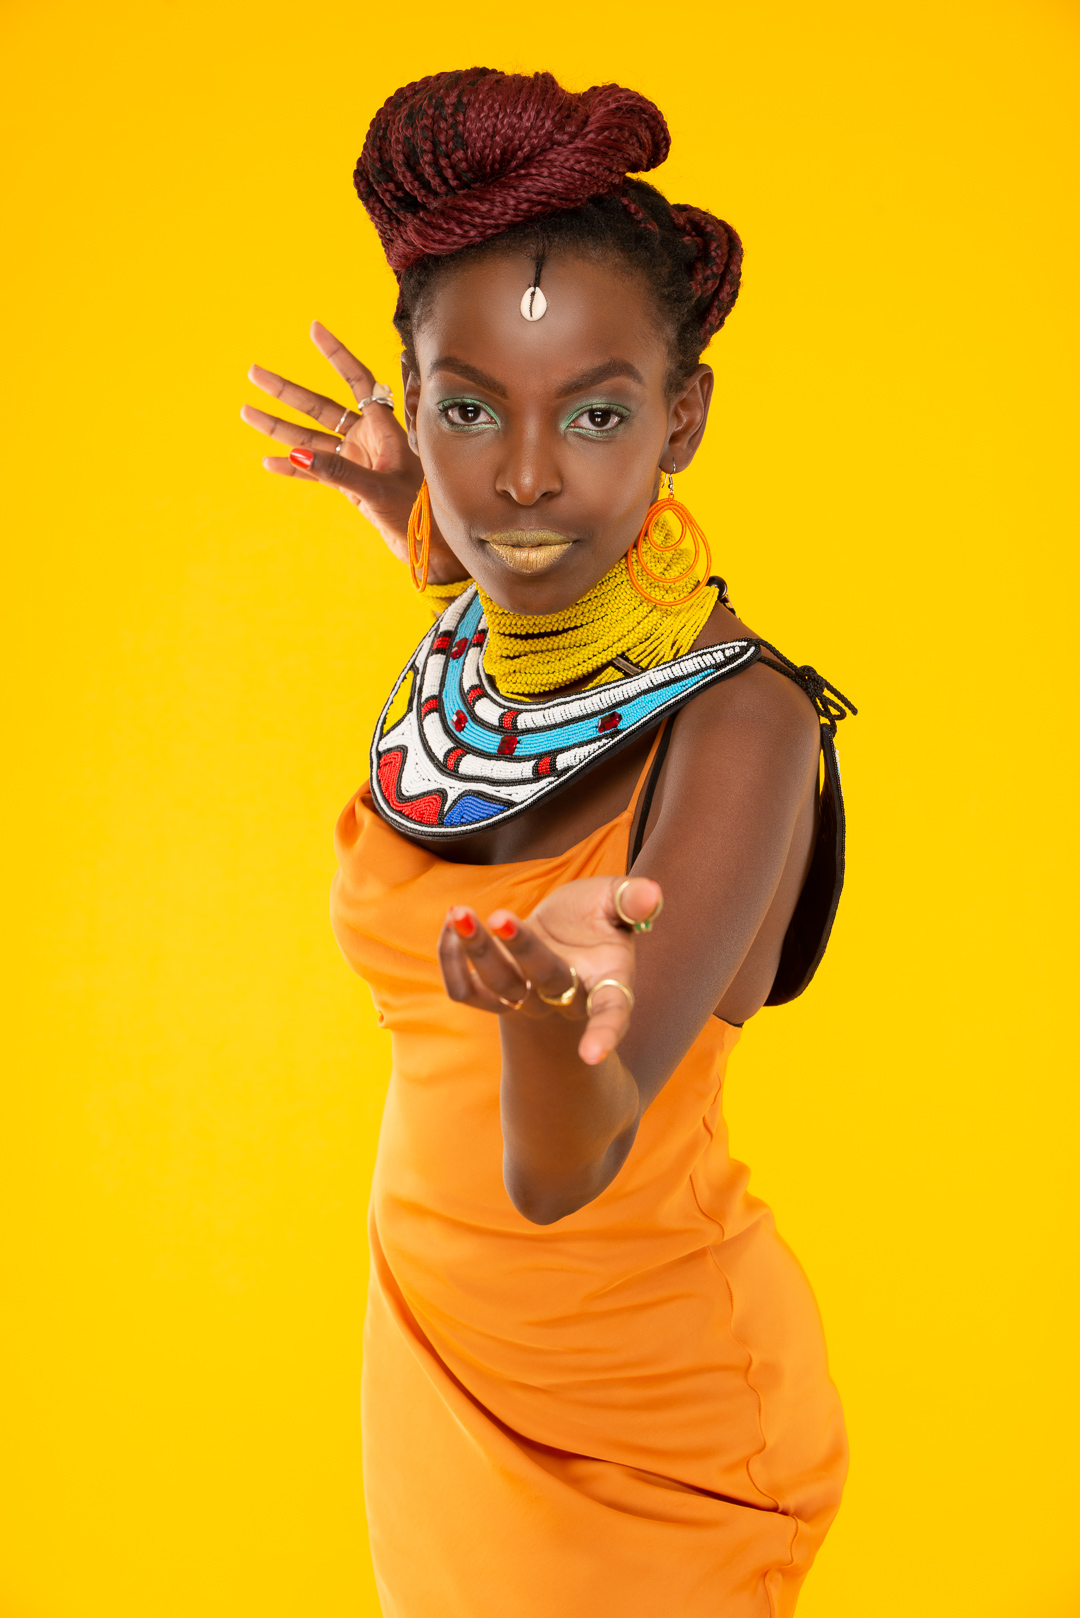 Afrofuturistic Fashion – Teta yellow dress – Studio Portrait Photography